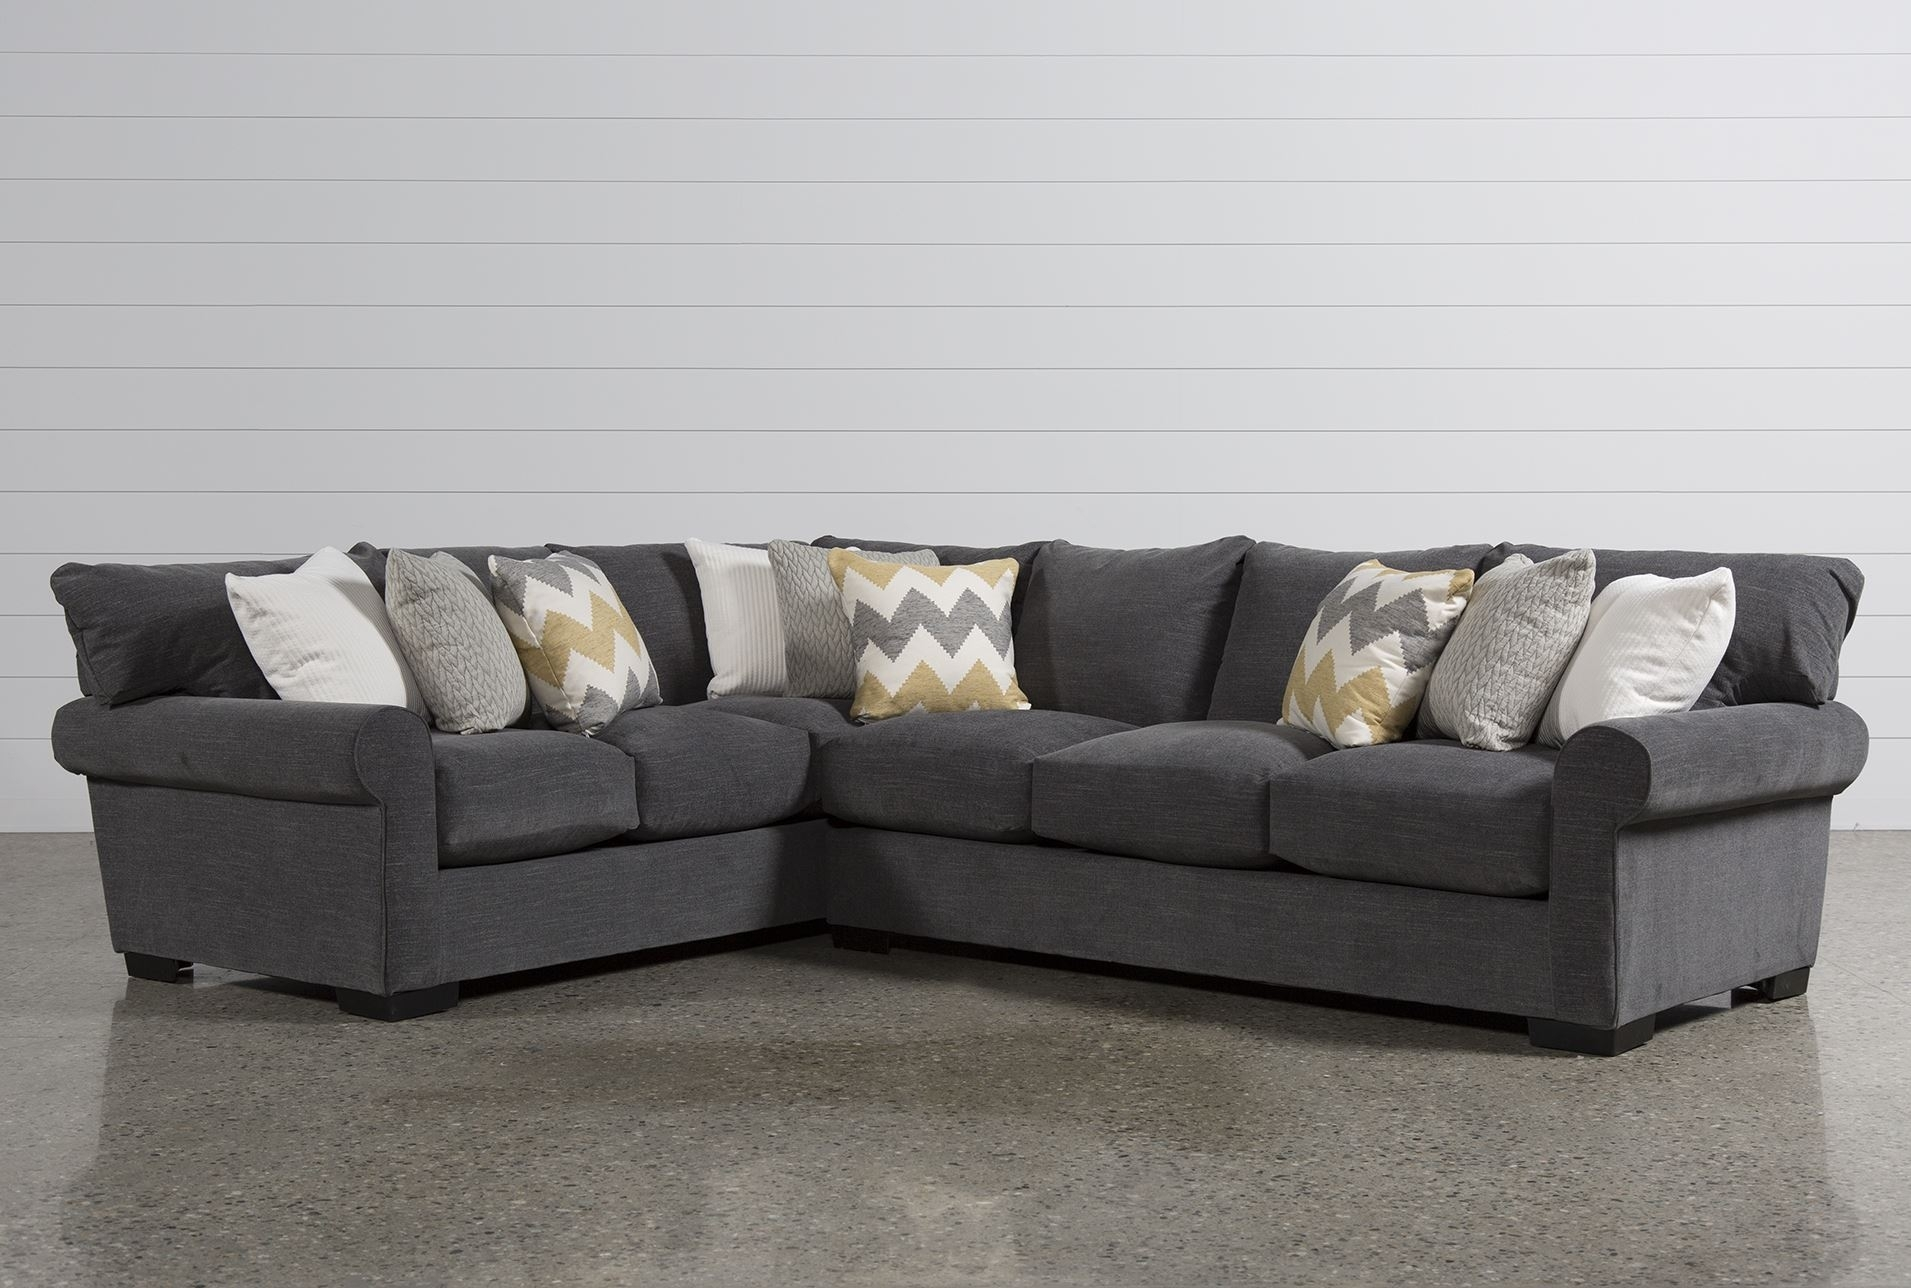 Charming 2 Piece Sectional Sofa On Aurora 2 Piece Sectional Living For Evan 2 Piece Sectionals With Raf Chaise (Image 9 of 25)